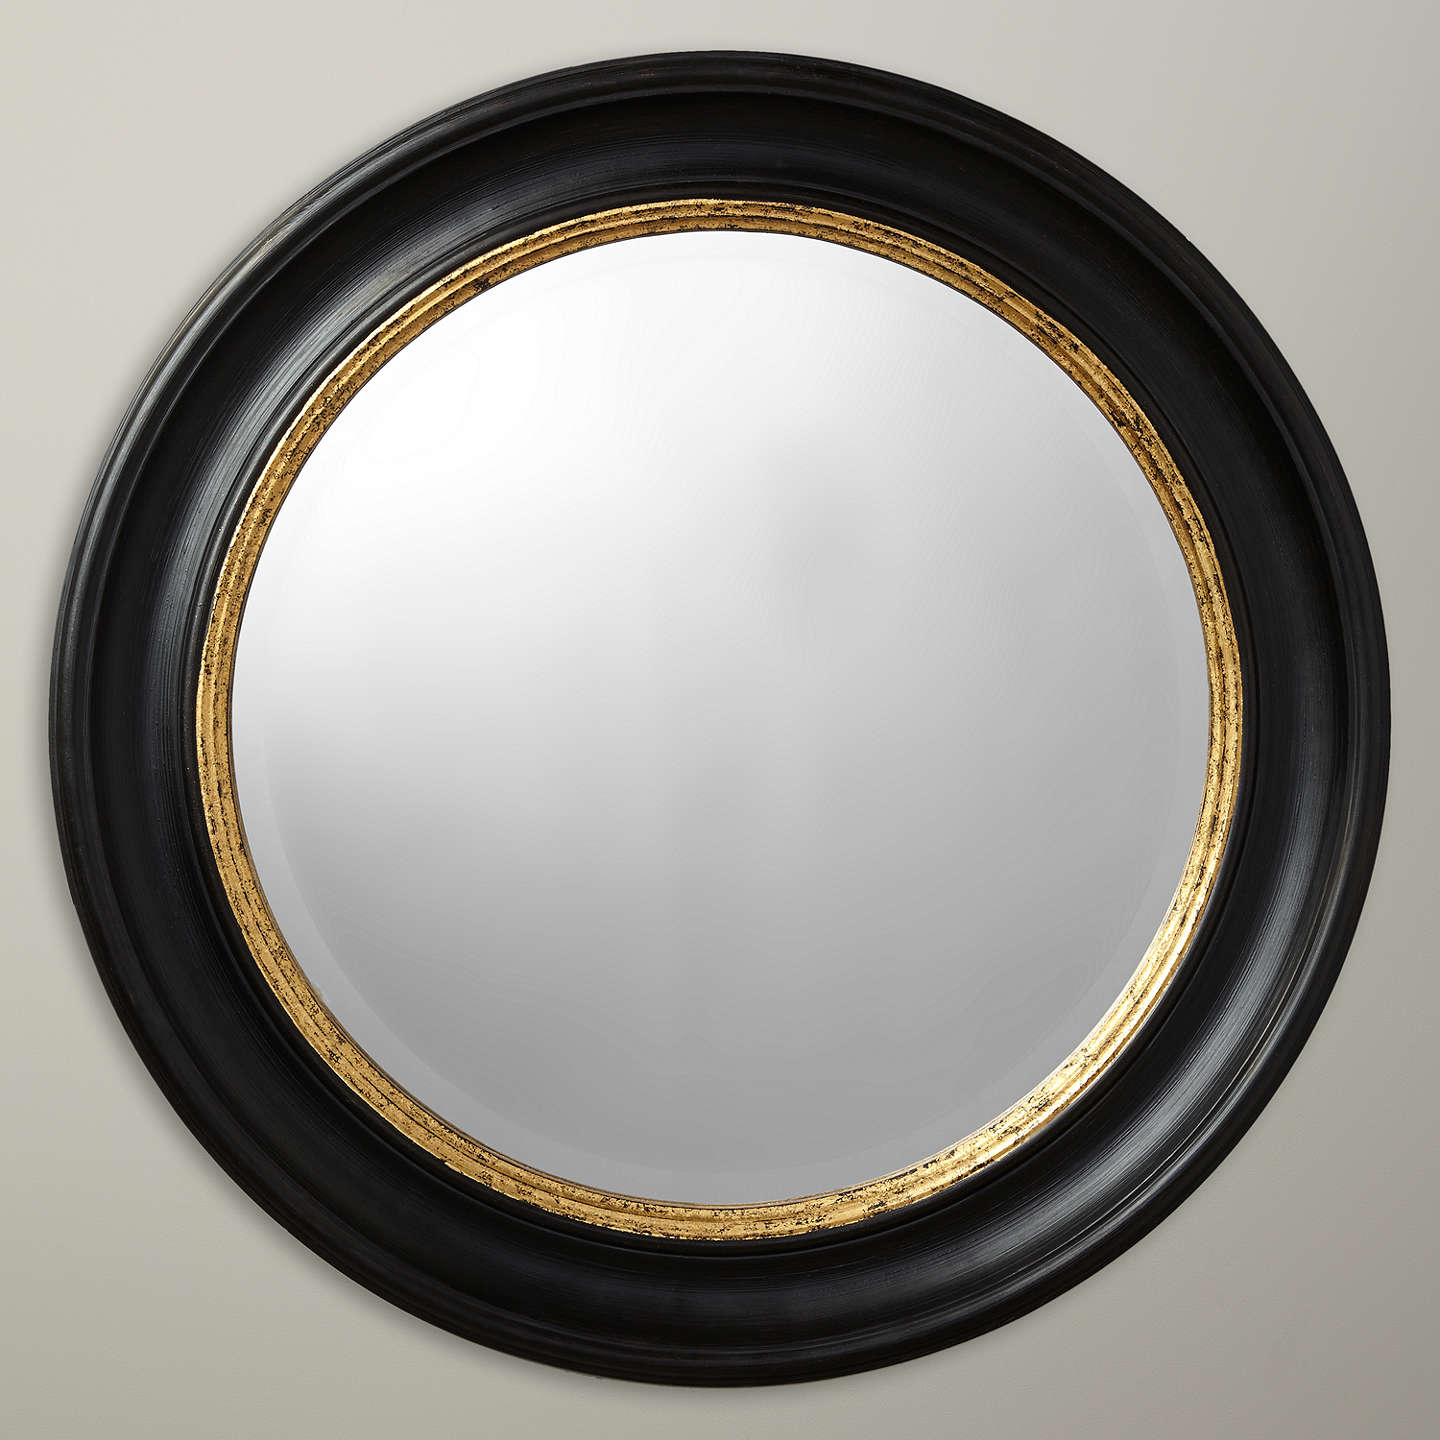 john lewis circle wall mirror black gold at. Black Bedroom Furniture Sets. Home Design Ideas